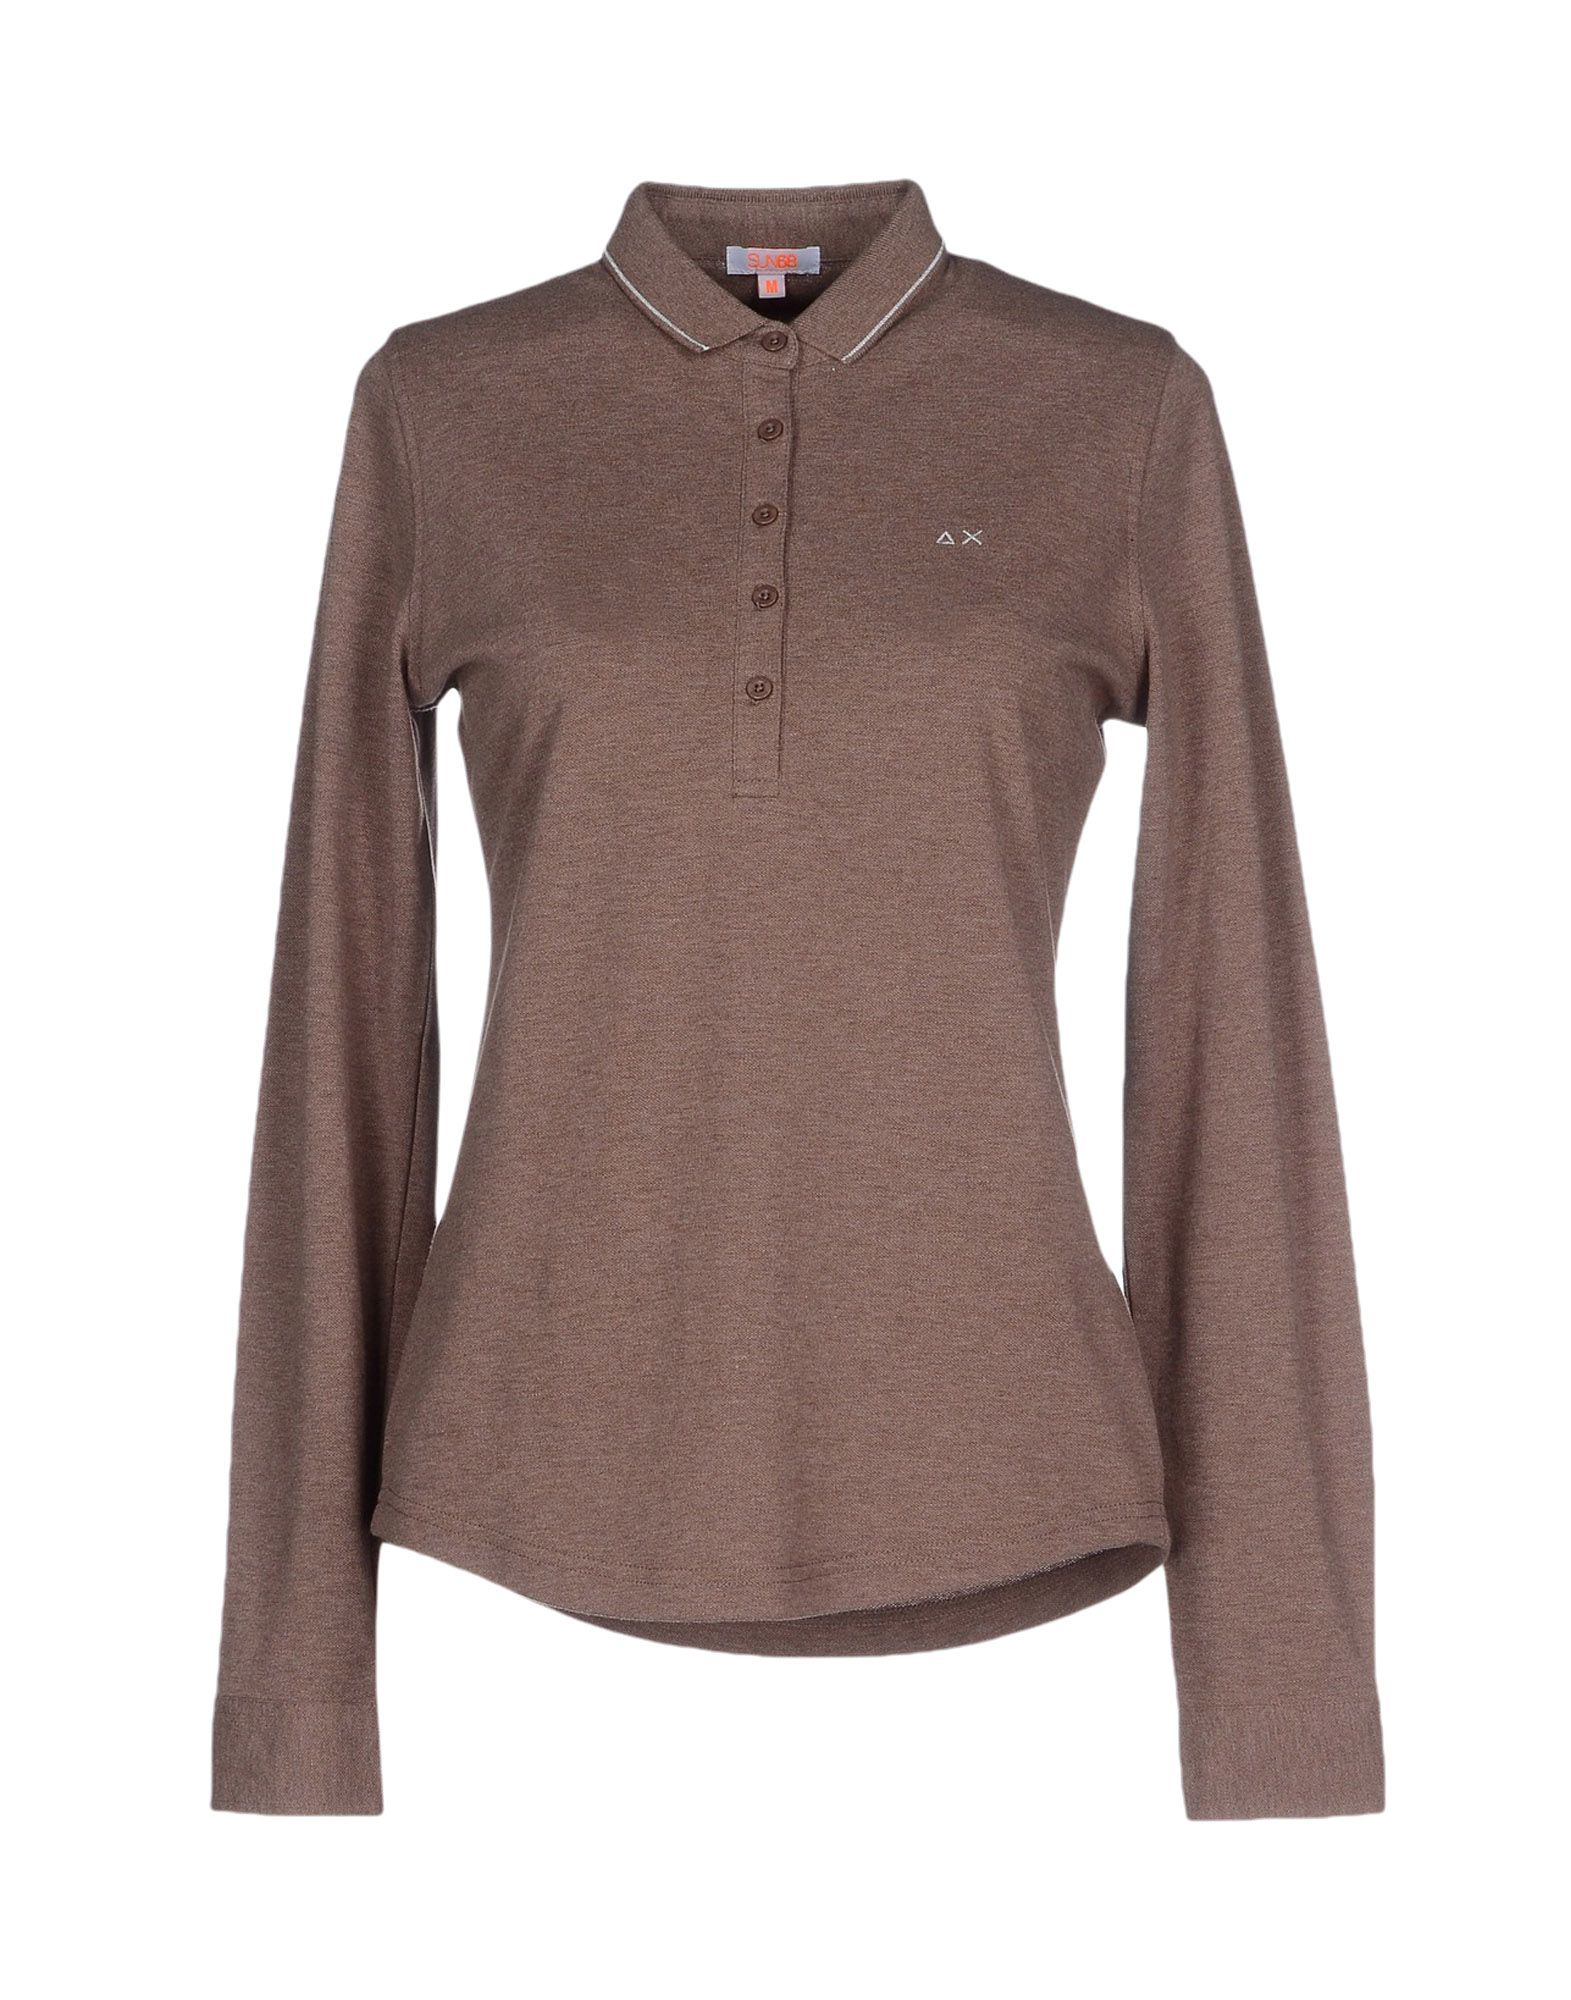 Sun 68 polo shirt in brown lyst for Light brown polo shirt